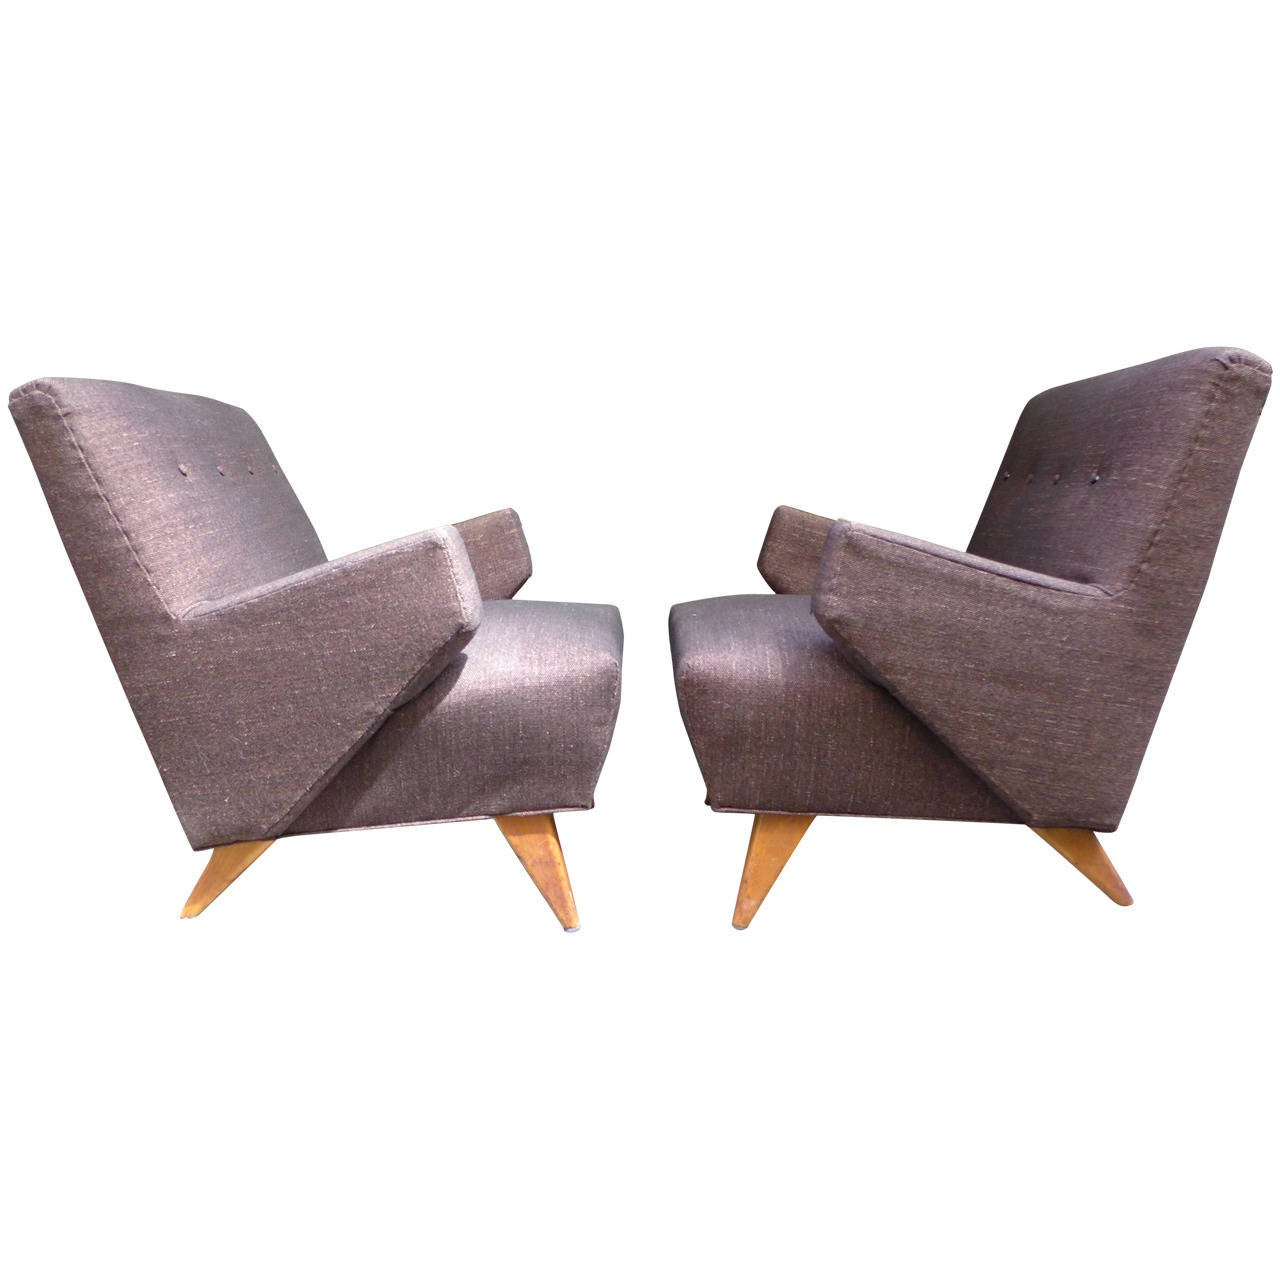 Pair of Early Jens Risom Lounge Chairs for Knoll at 1stdibs